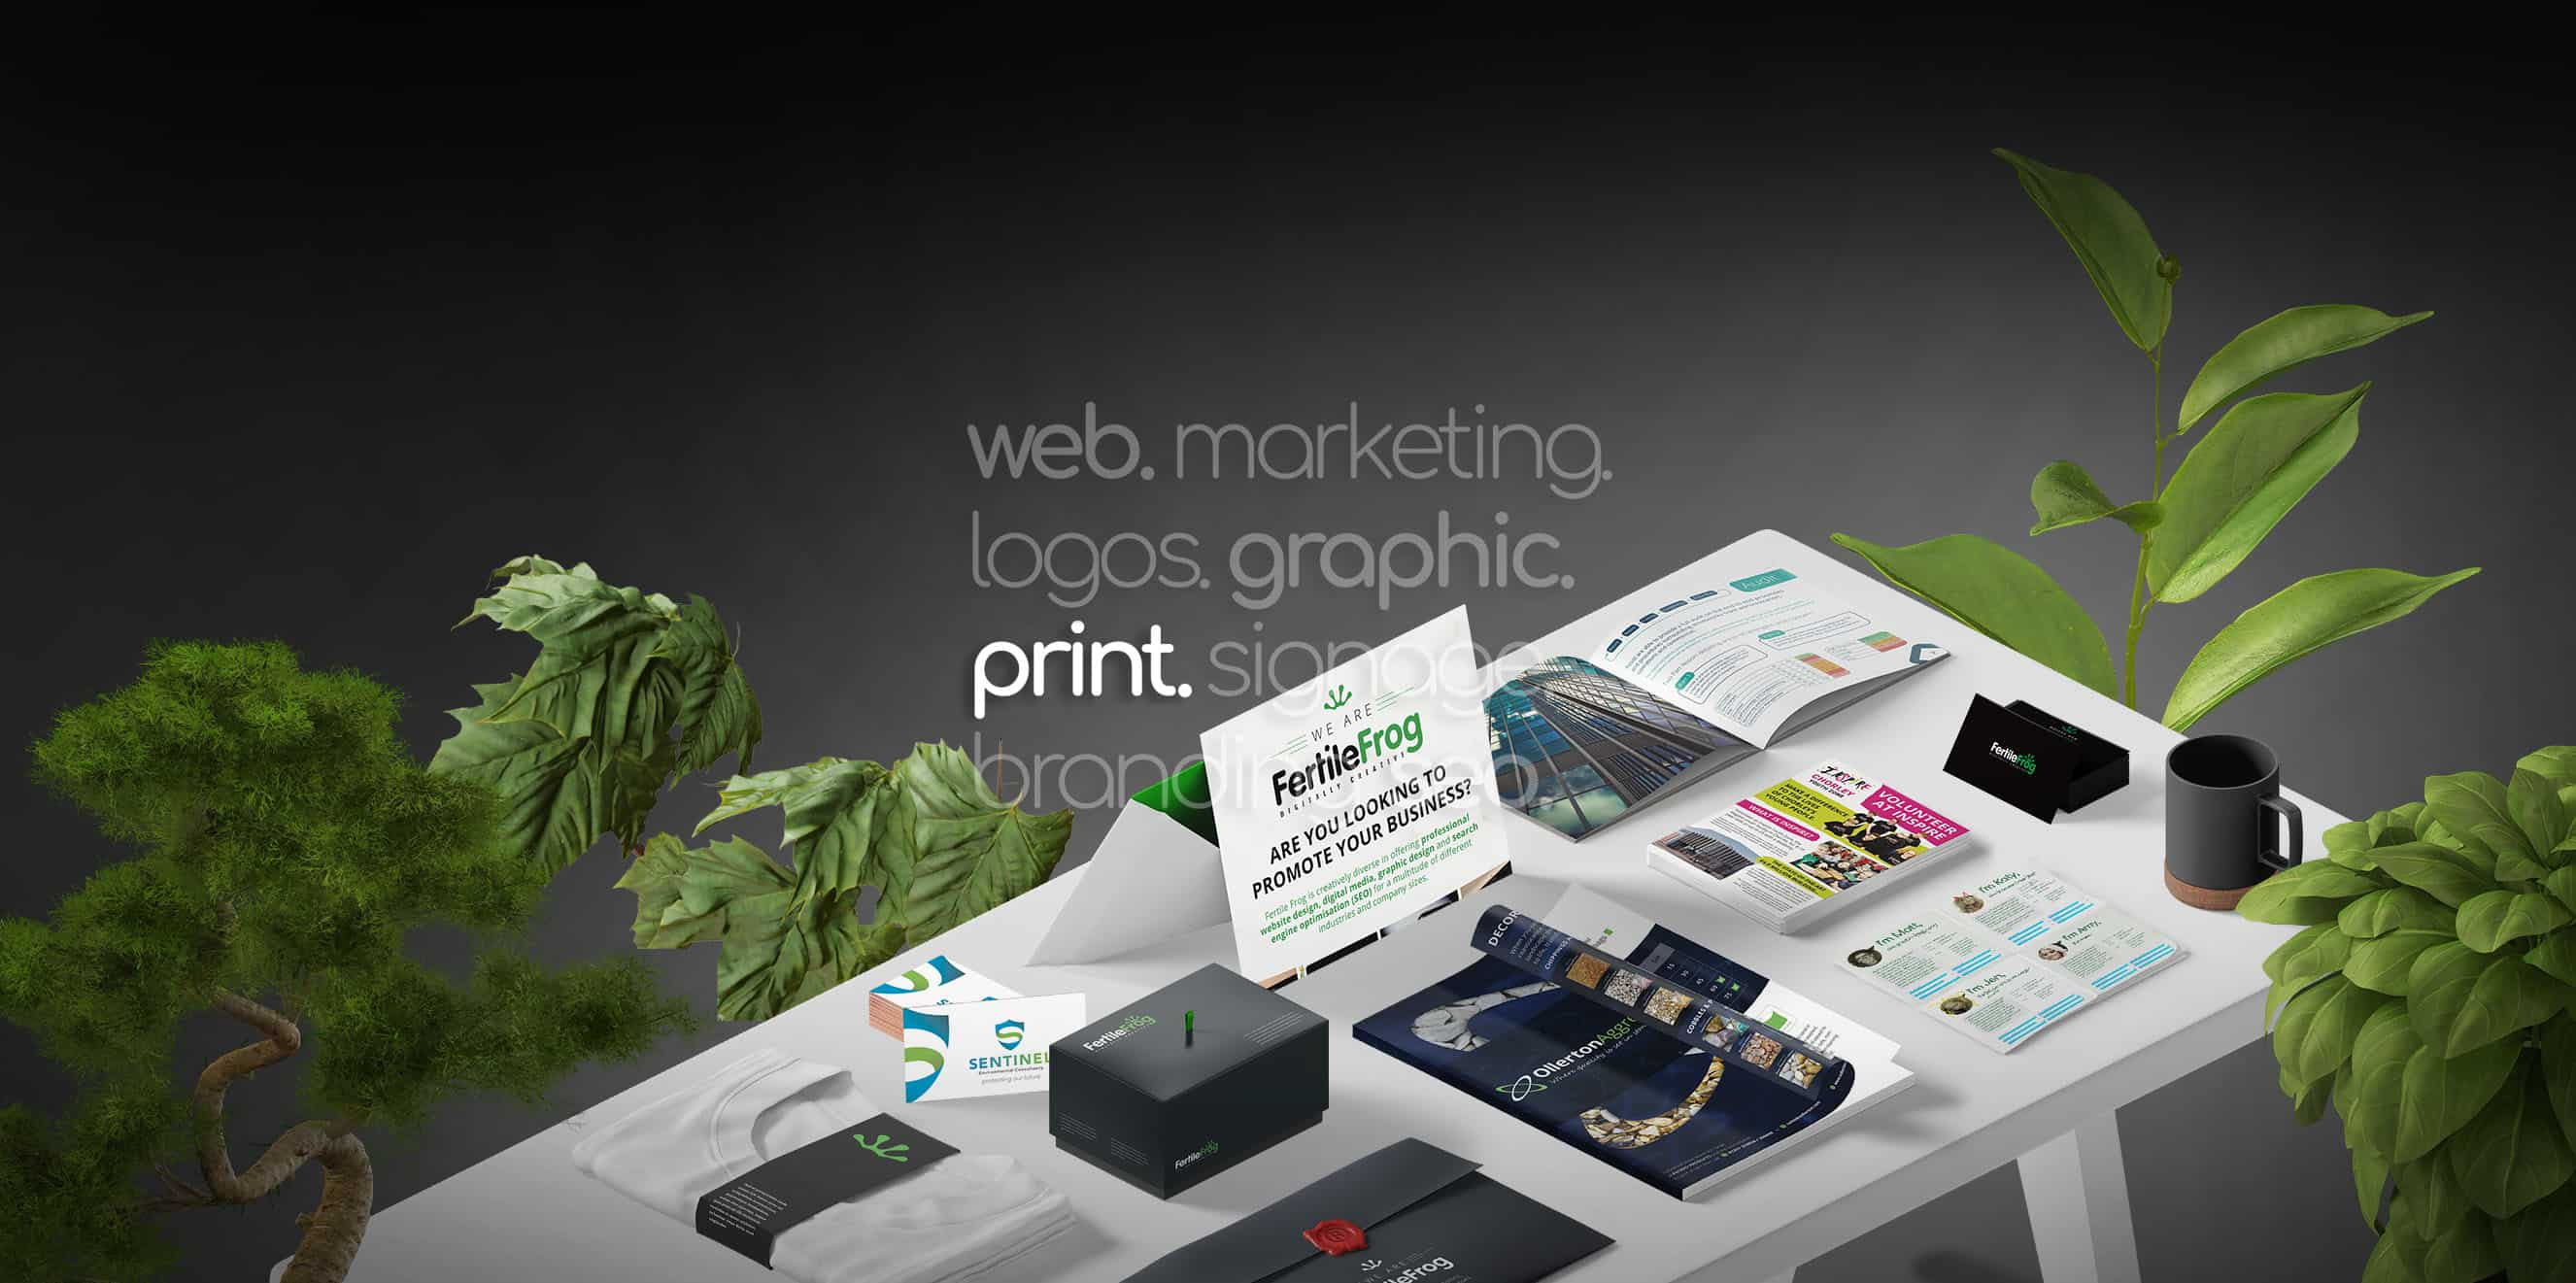 Fertile Frog print work on table with brochures, leaflets, business cards, t-shirts, posters boxes showing work